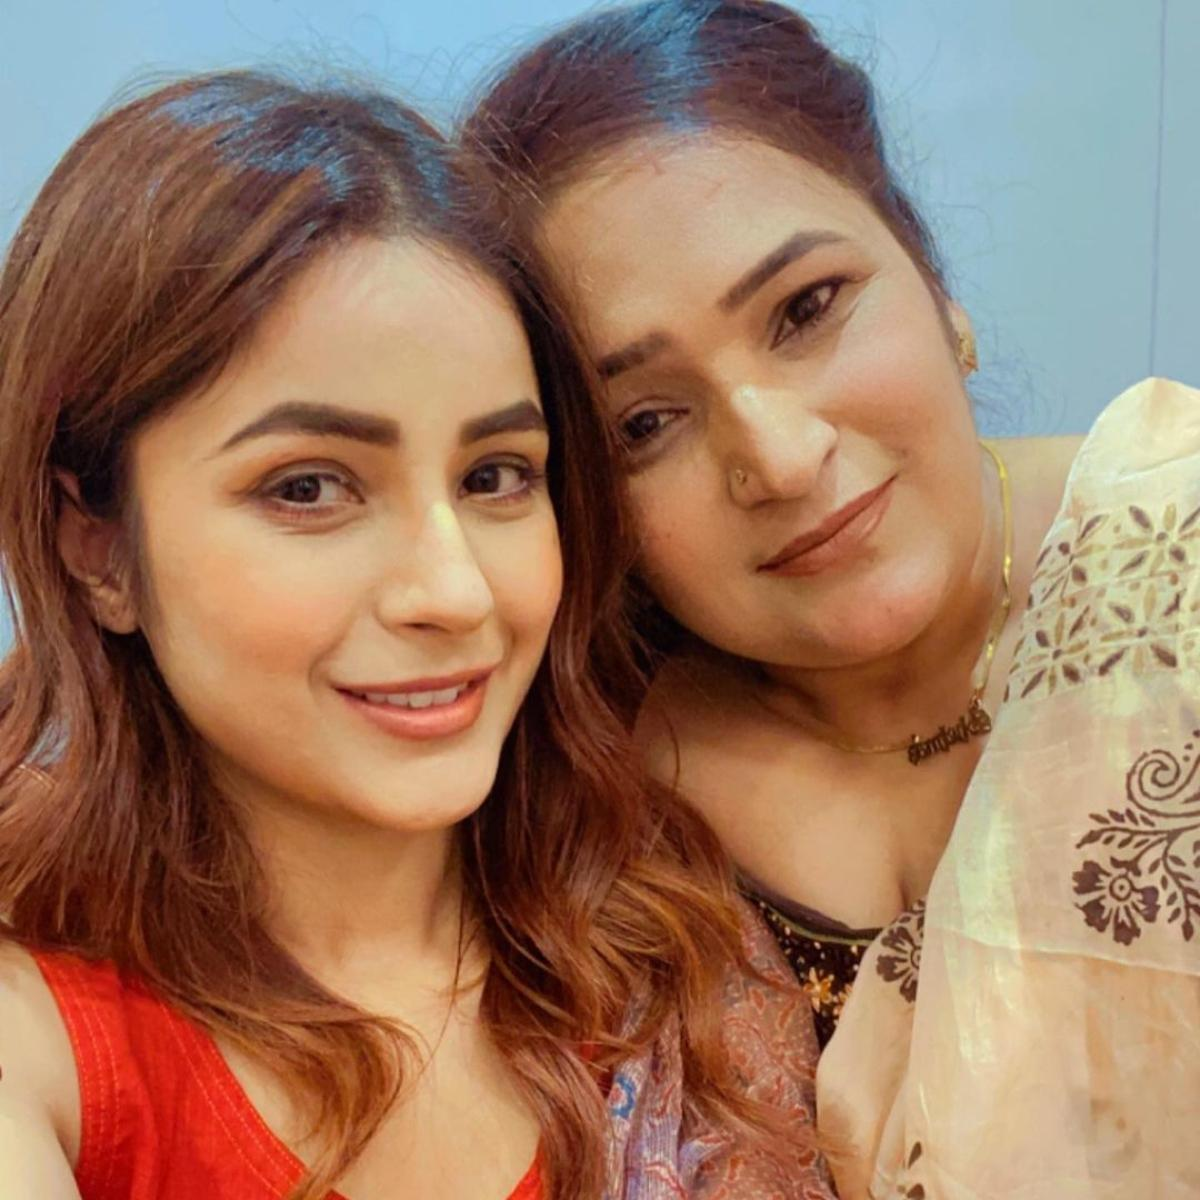 Shehnaaz Gill's adorable pics with her mom